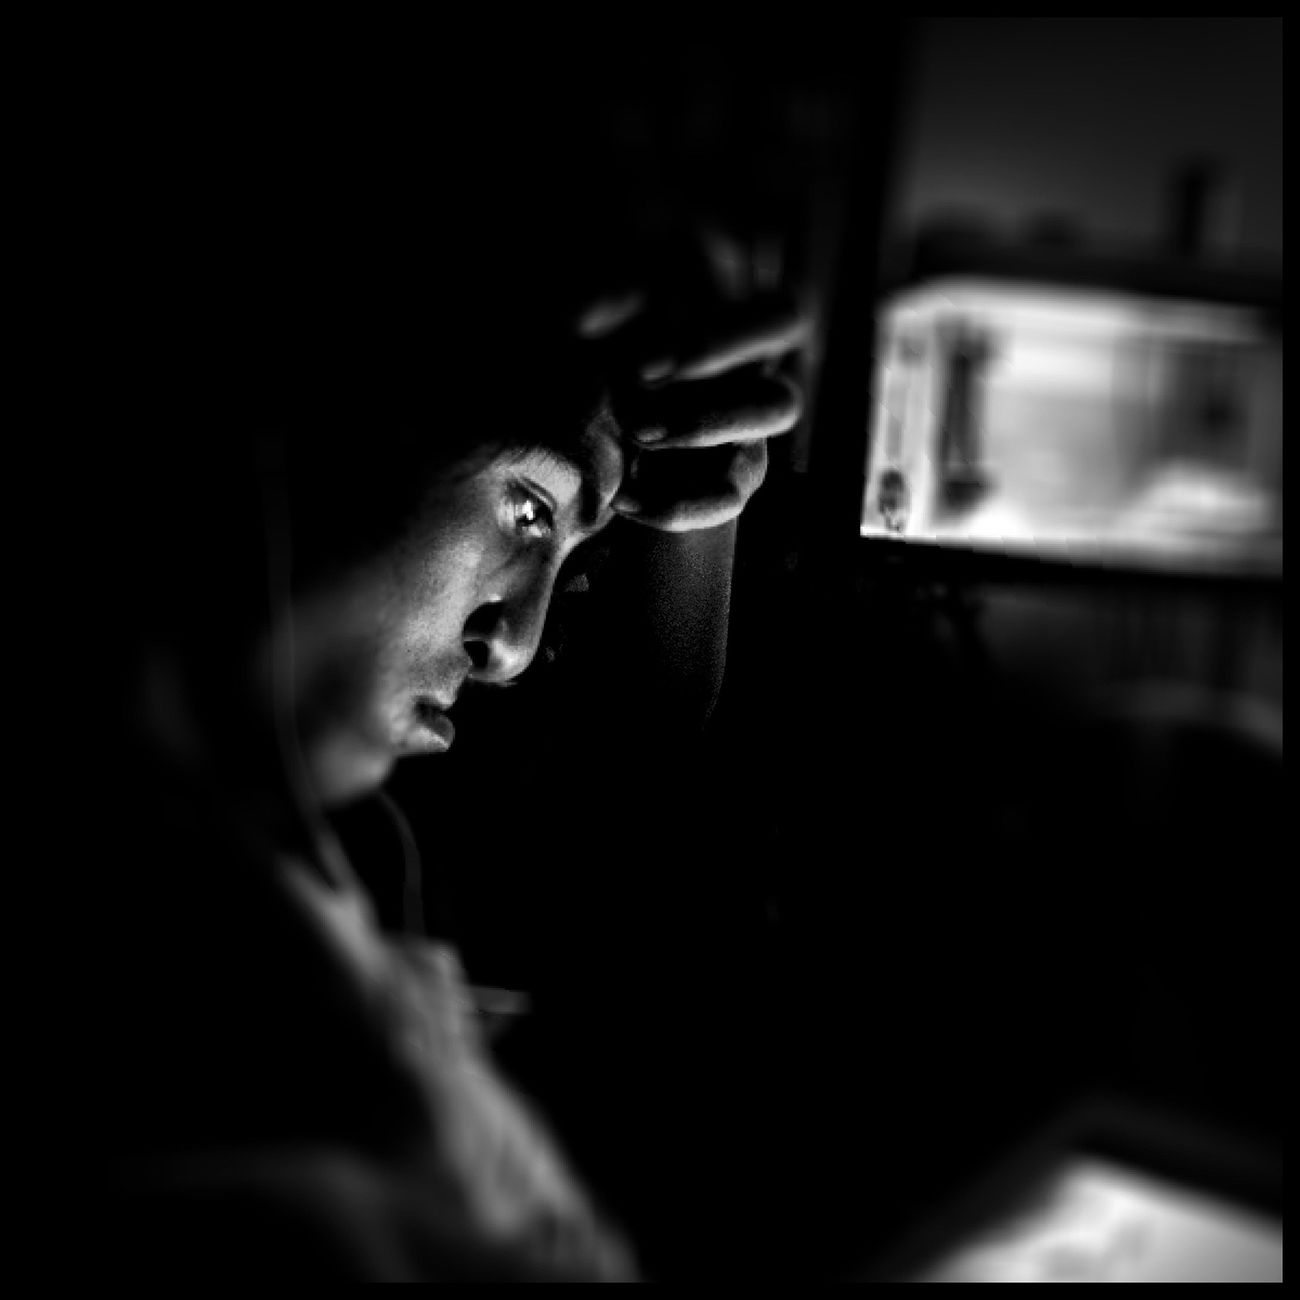 My nephew watching anime on my iPad. Black And White Portrait WeAreJuxt.com AMPt_community Mobilegraphics Adventure